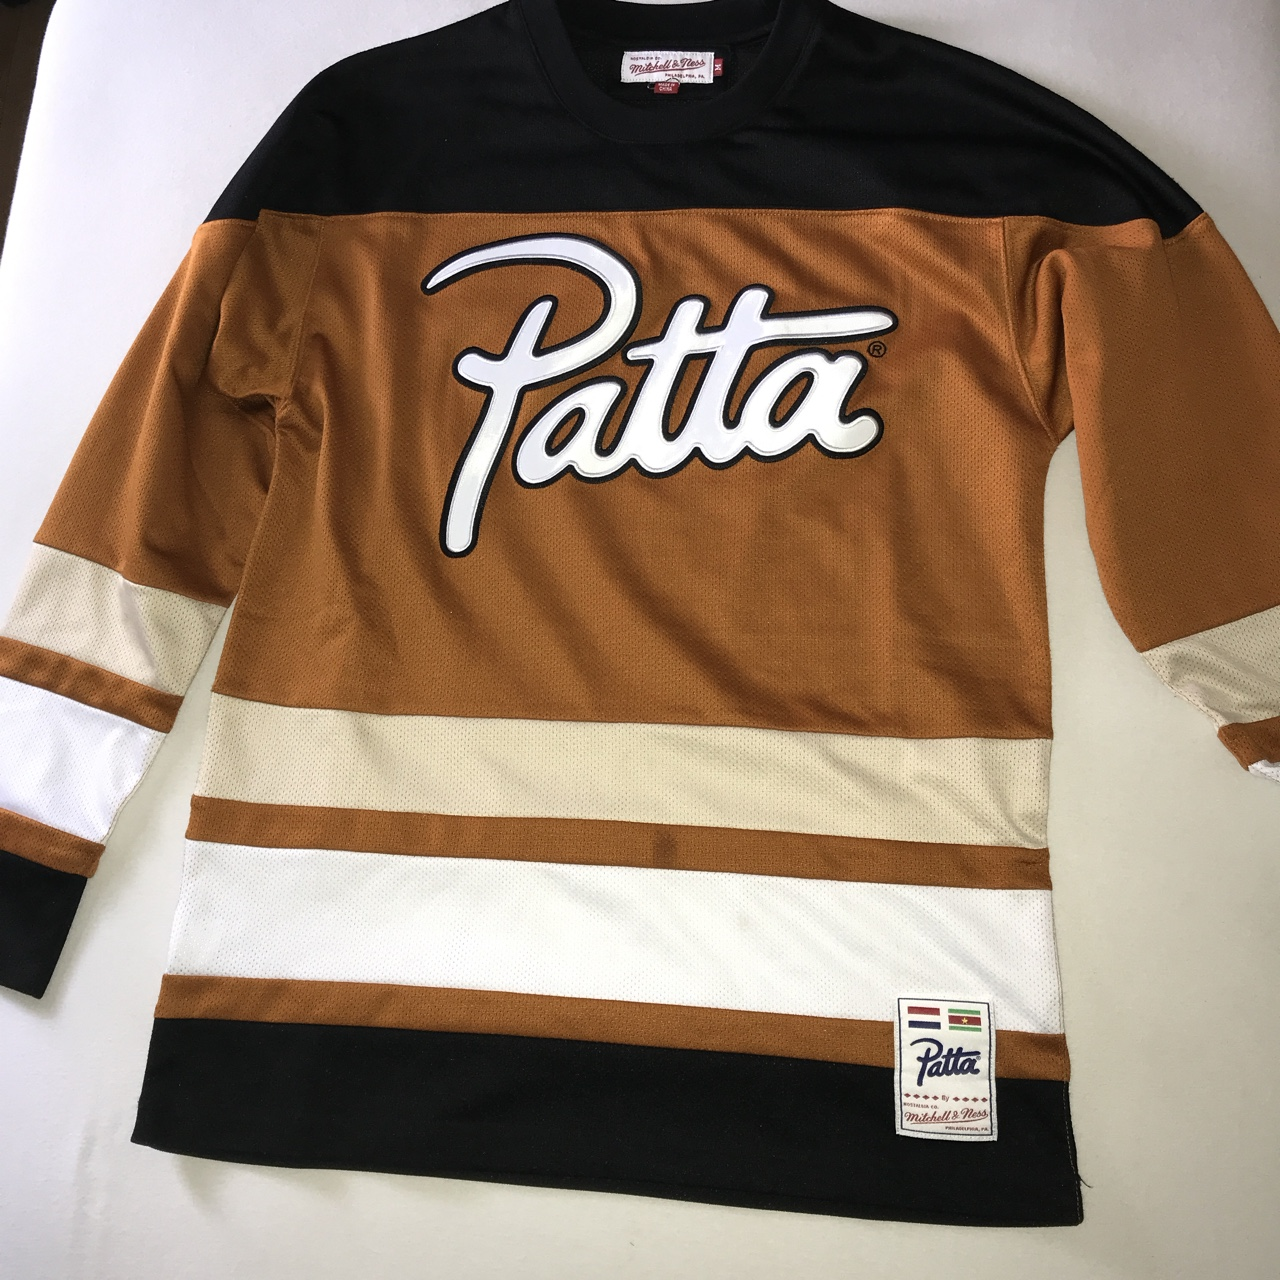 newest fcbe9 bccdb Patta , Mitchell & Ness Jersey Size M Used , but in... - Depop